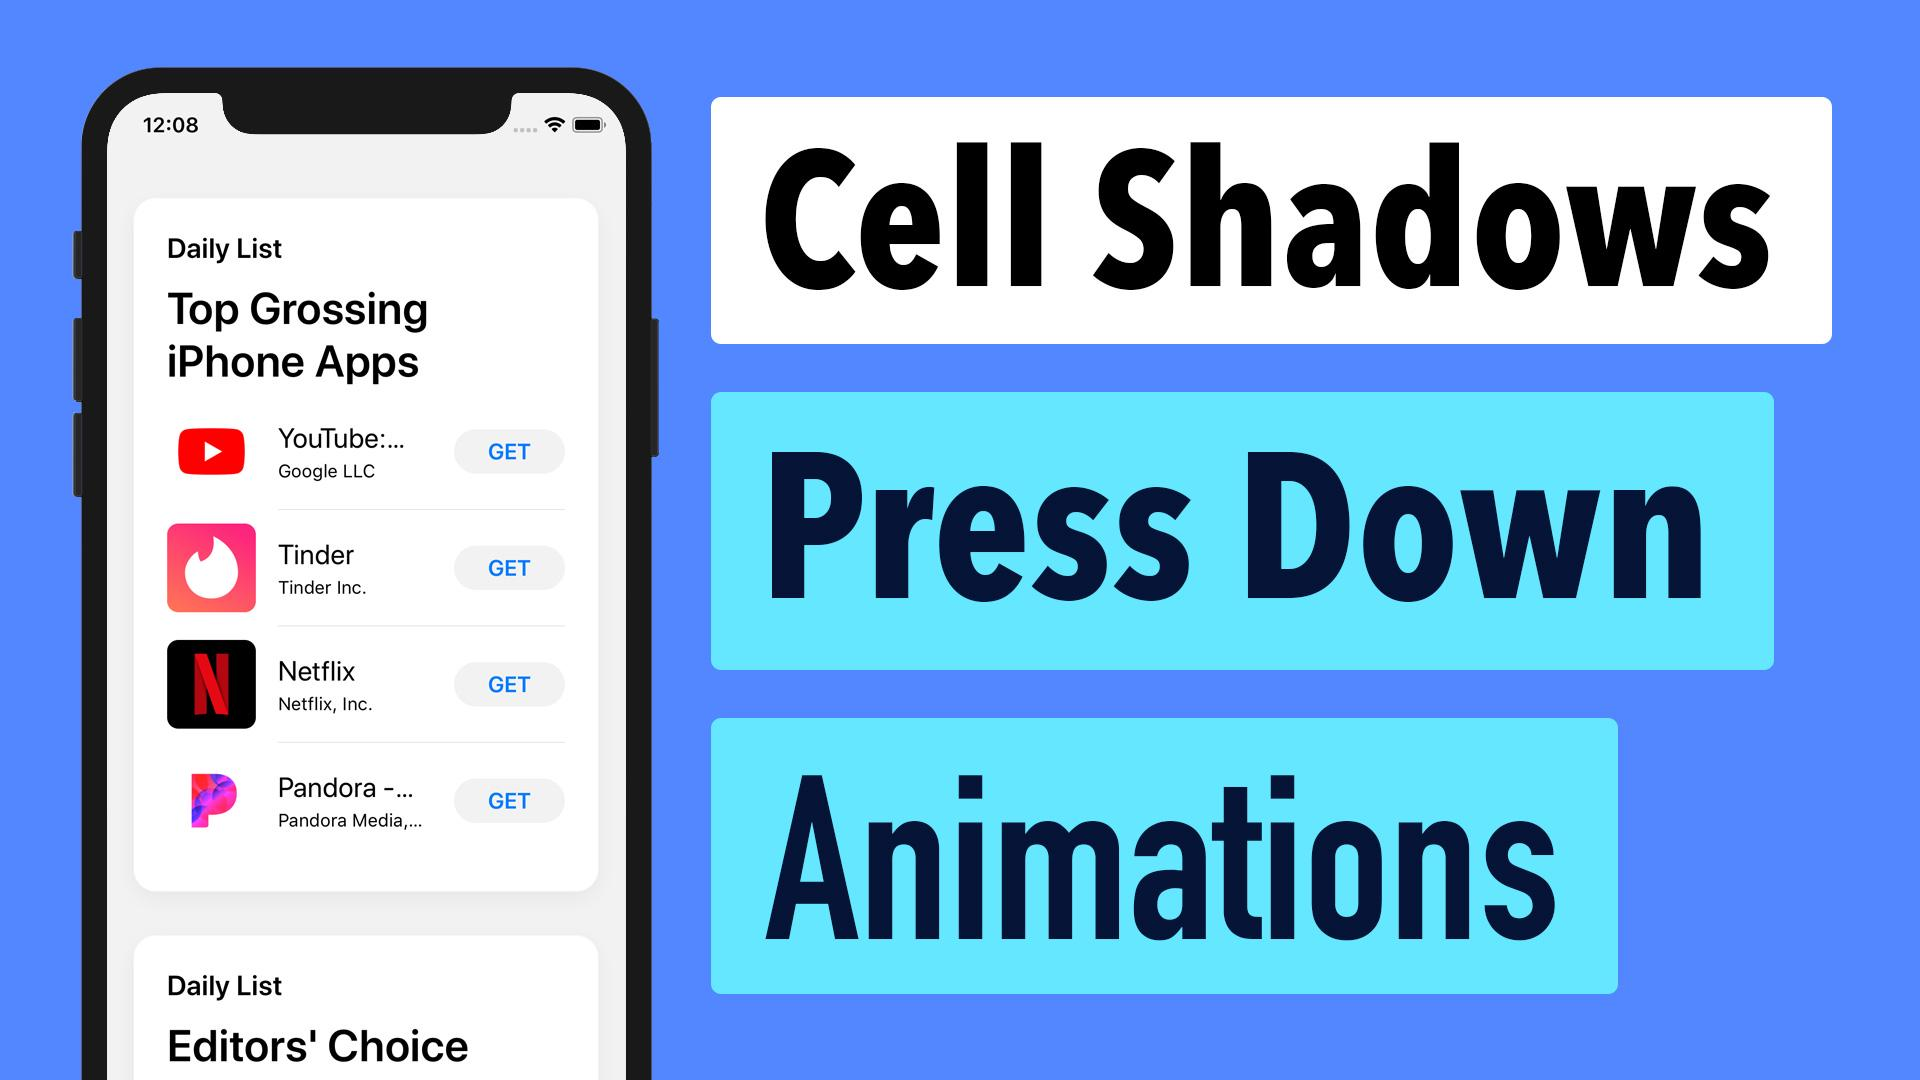 AppStore 39 - Cell Shadows and Press Down Animations | Lets